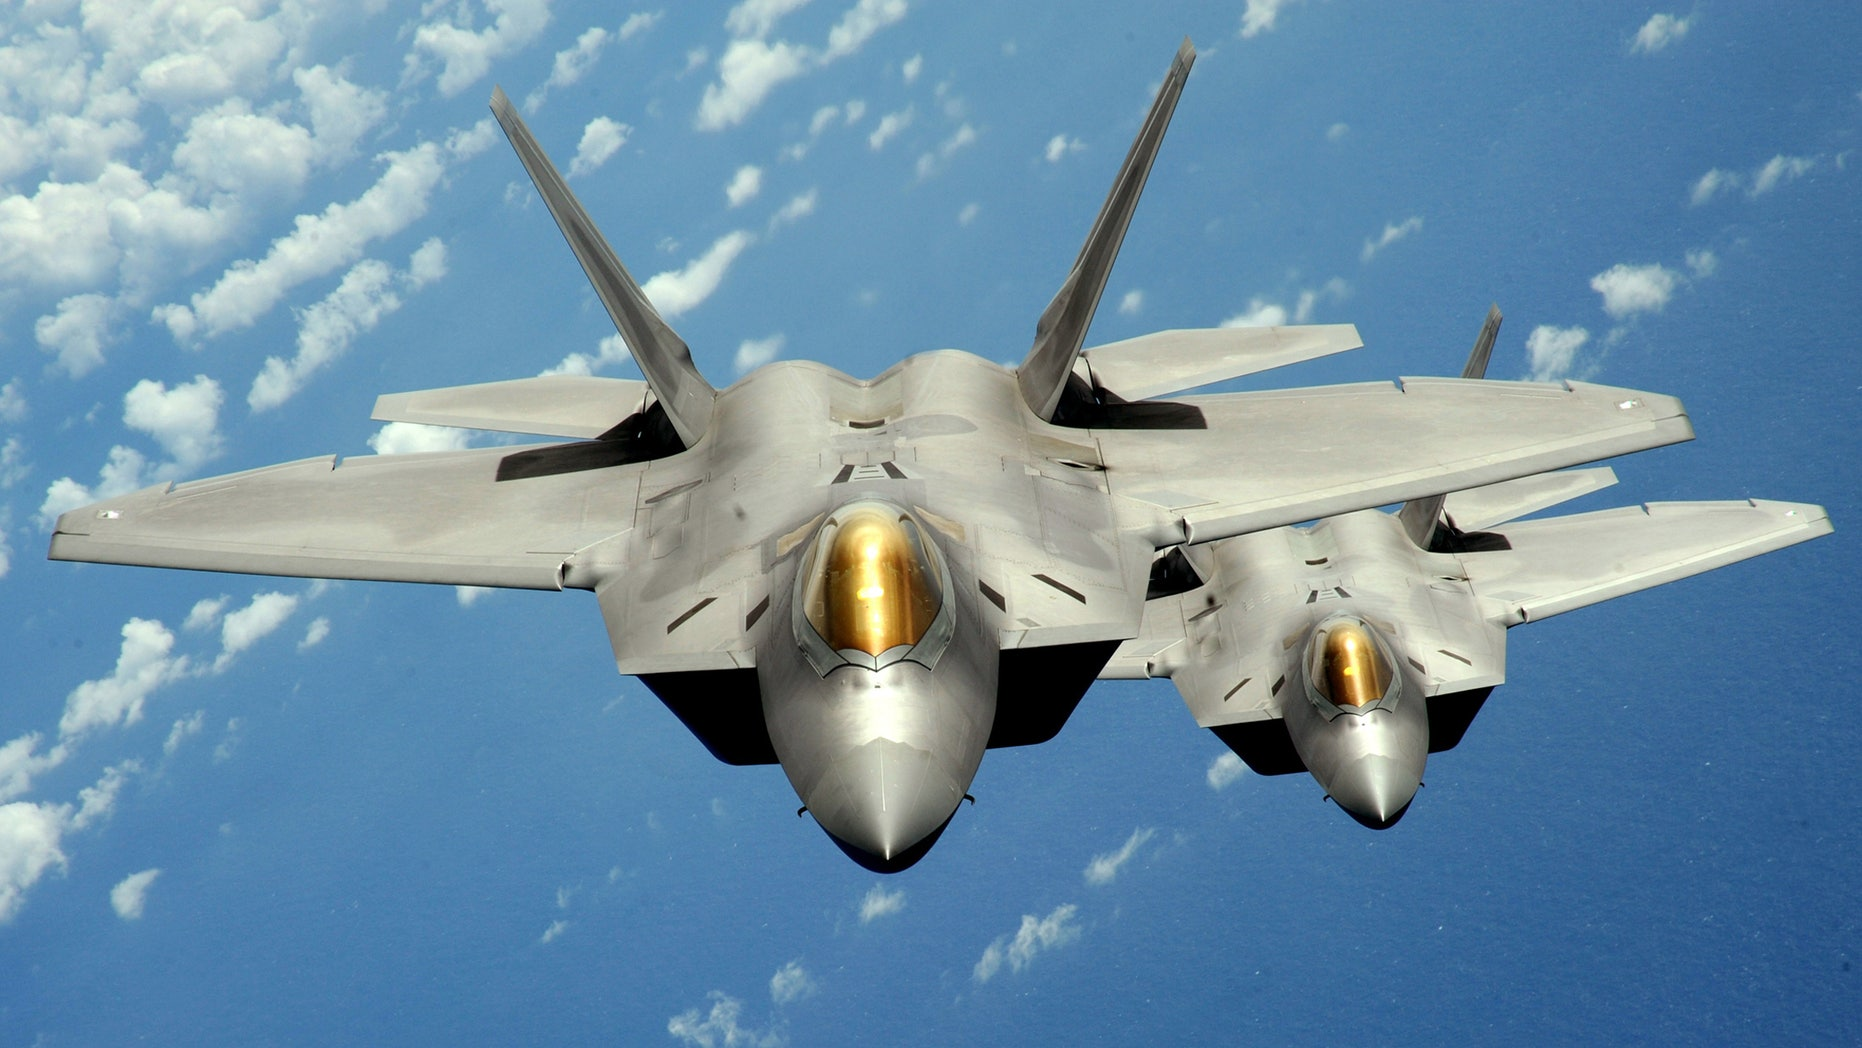 Two U.S. Air Force F-22 Raptor stealth jet fighters fly near Andersen Air Force Base in this handout photo dated August 4, 2010. (REUTERS/U.S. Air Force/Master Sgt. Kevin J. Gruenwald/Handout)